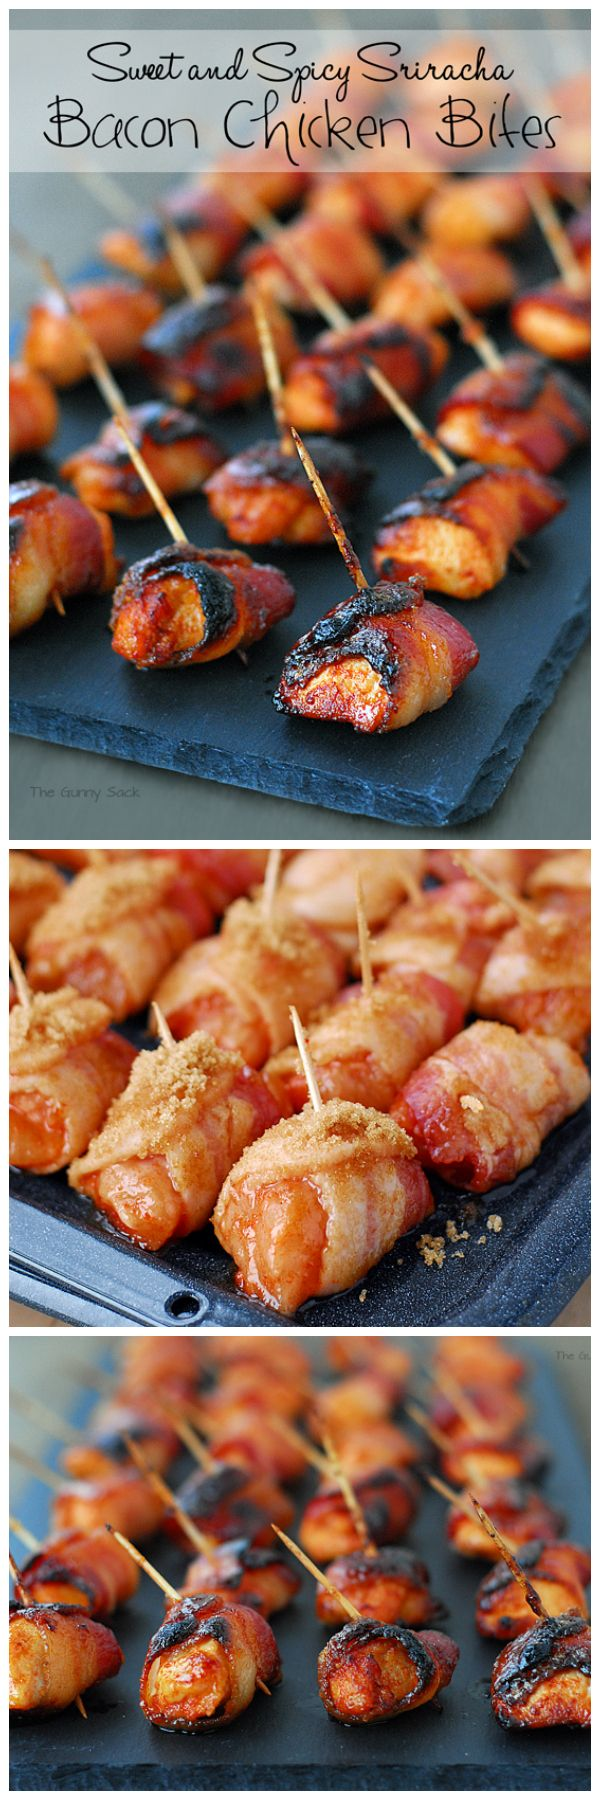 This is the time of the year when everyone is looking for awesome appetizer recipes. These Sweet and Spicy